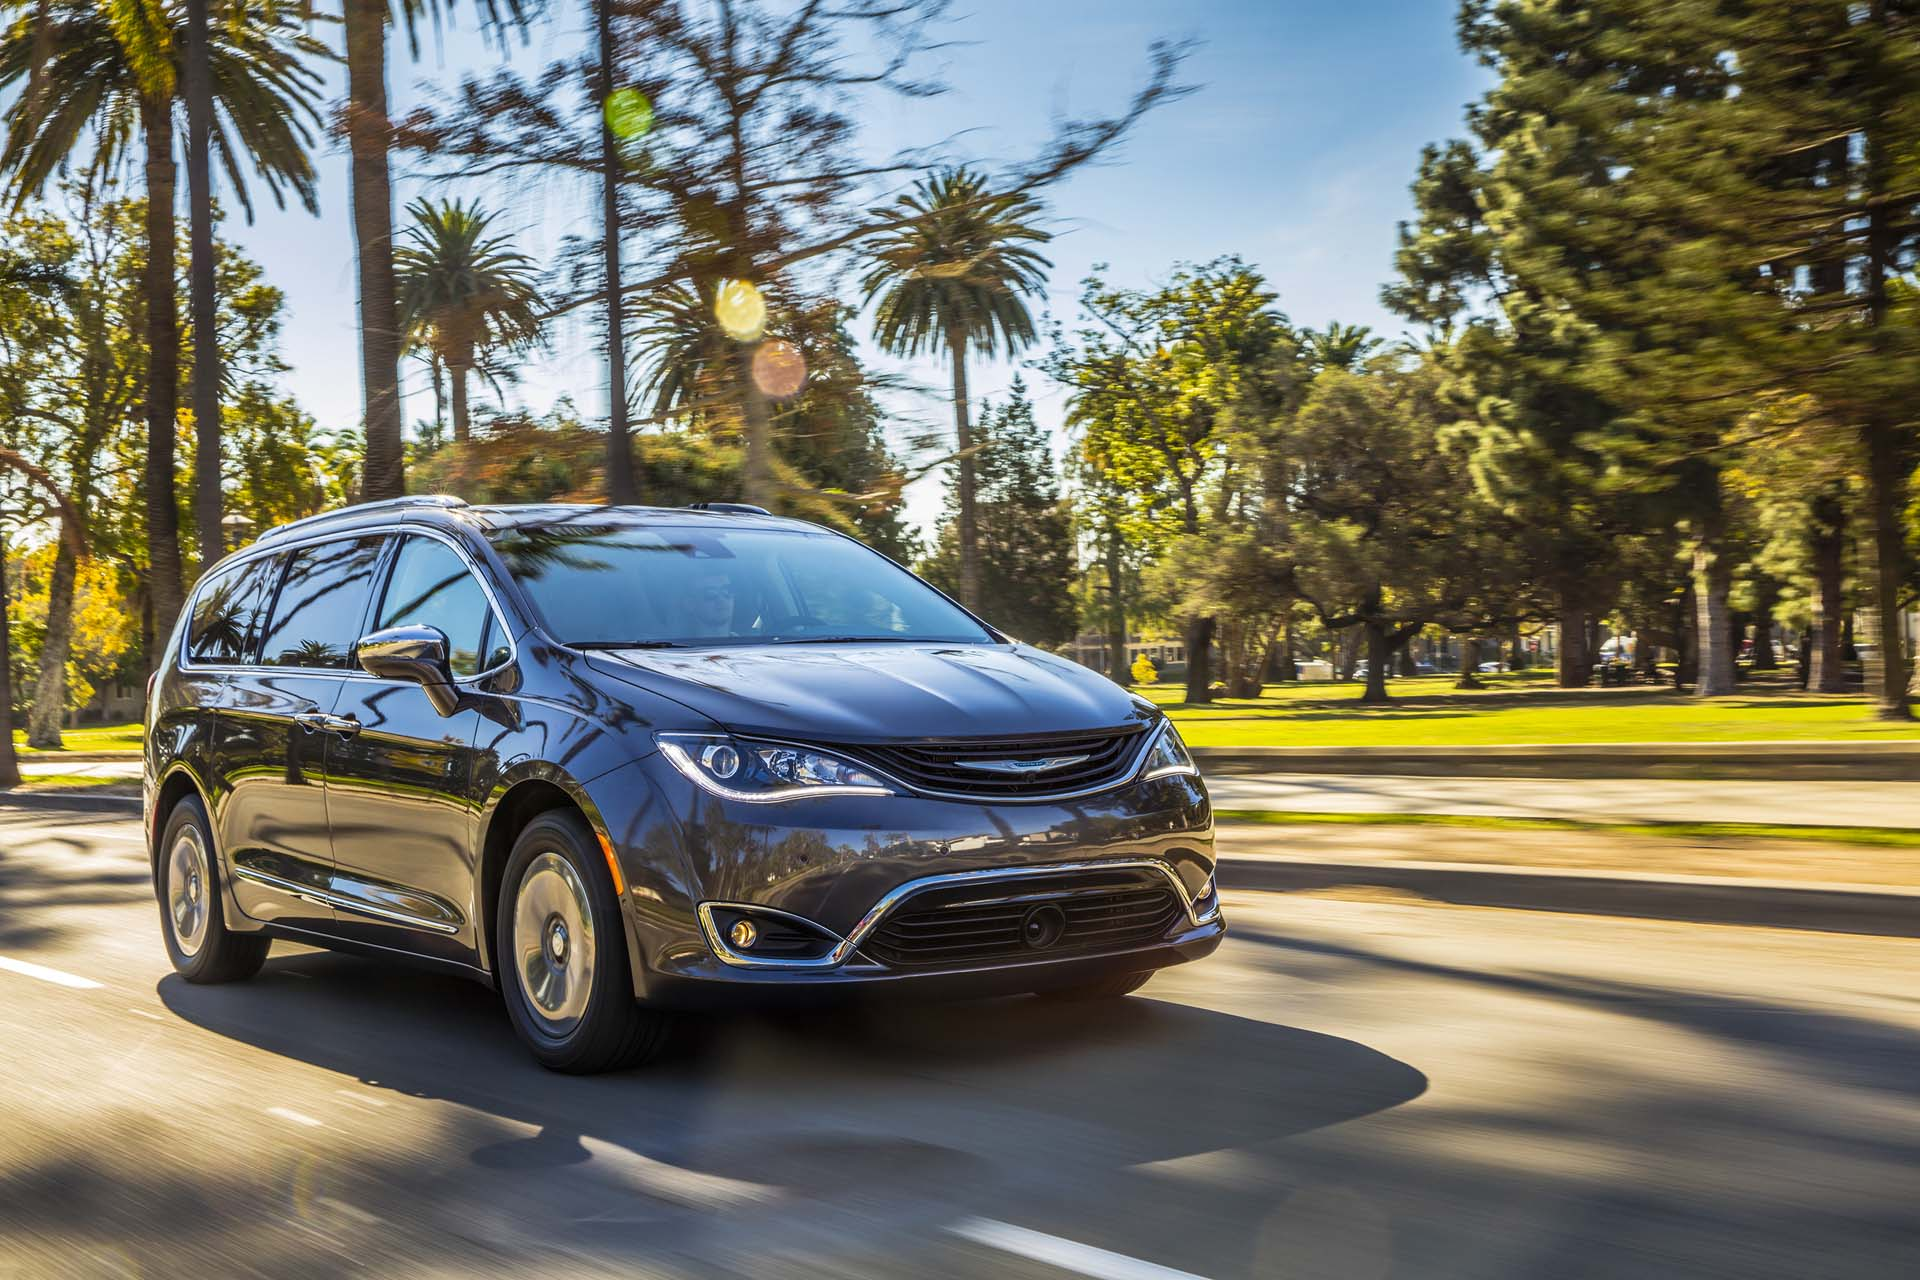 2017 Chrysler Pacifica Hybrid Plug In Minivan Recalled For Faulty Diode Updated